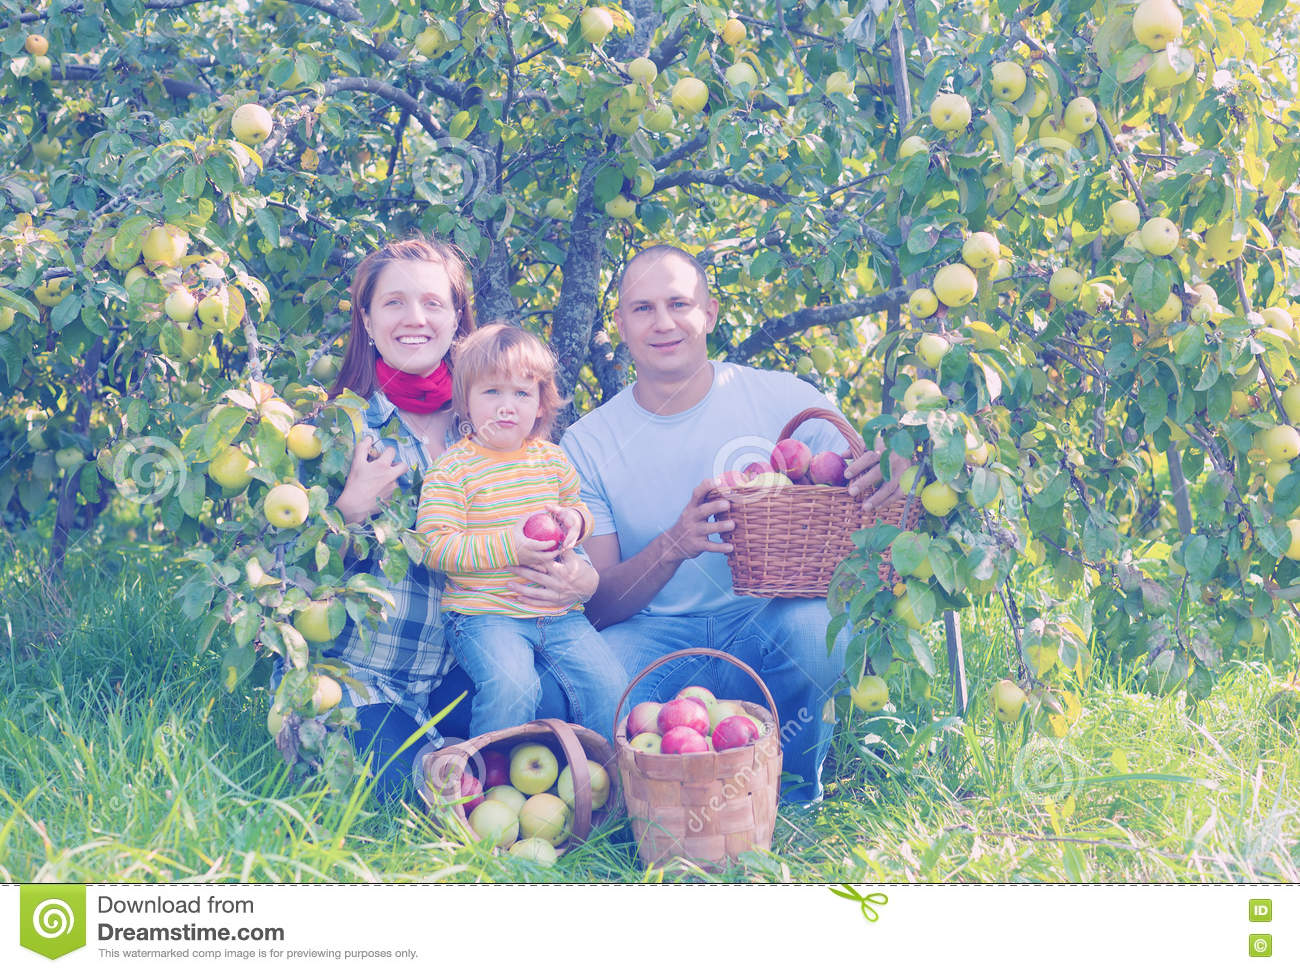 Family At The Orchard Royaltyfree Stock Image. Cisco Partner Certification Call Center Kpi. Downtown Houston Office Space. Data Destruction Software Movers Kirkland Wa. Car Shipping Carriers Reviews. Oklahoma Beer Alcohol Content. Performance Management Examples. Ultrasound Tech School In California. Google Adwords White Paper Glc Sx Mm Sfp